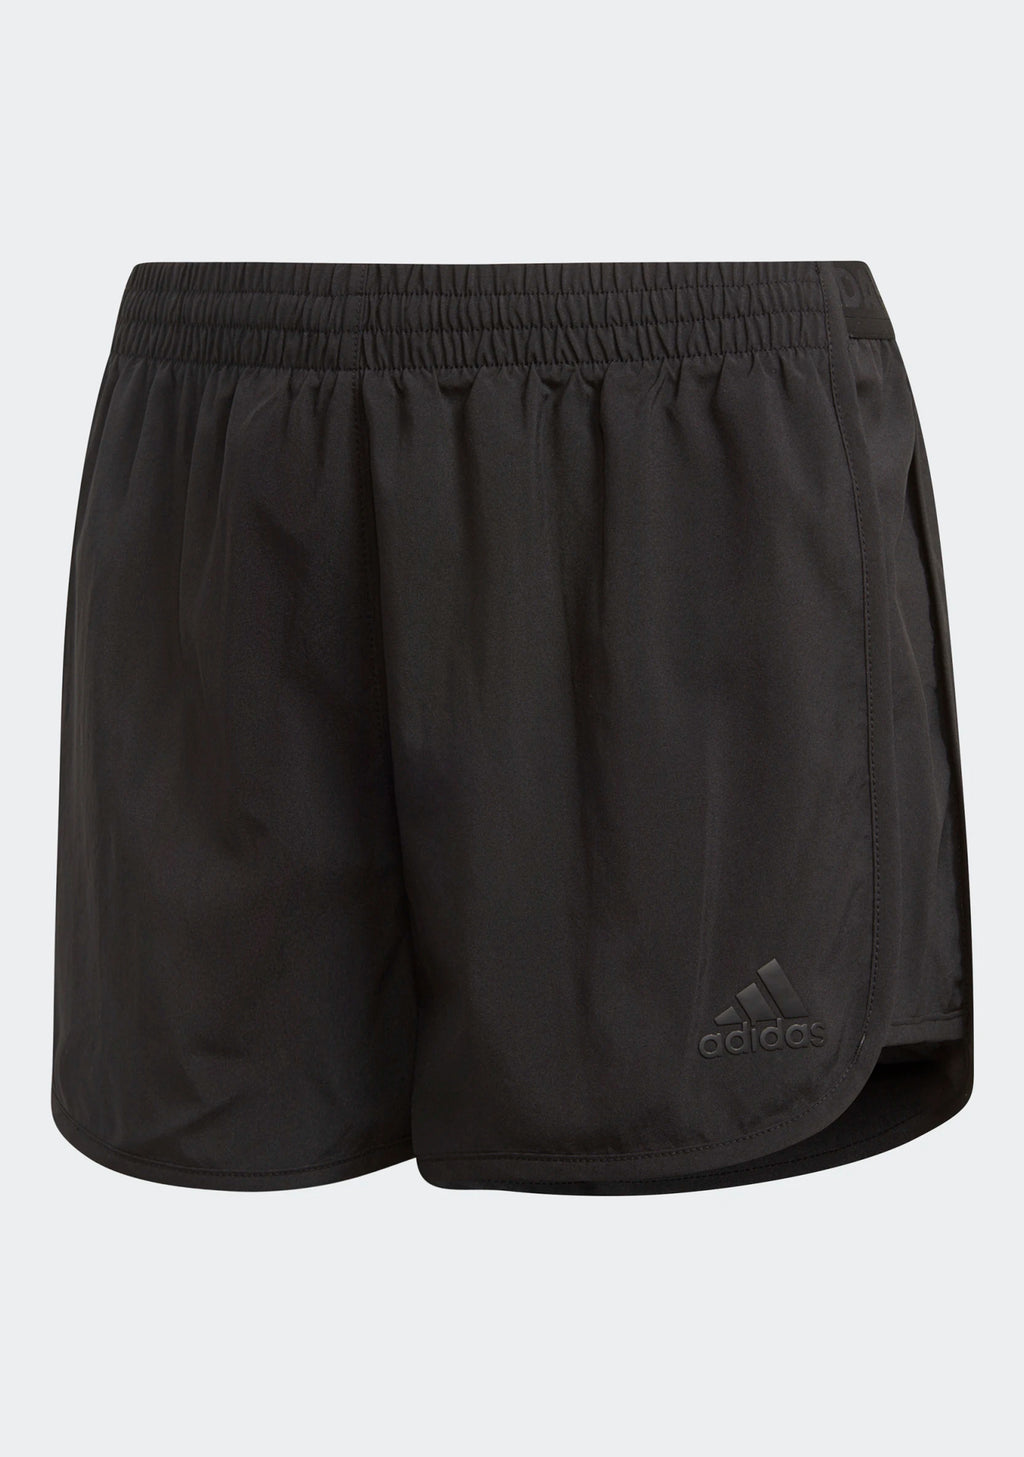 ADIDAS MARATHON TRAINING SHORTS JUNIOR GIRLS <br> DJ1066